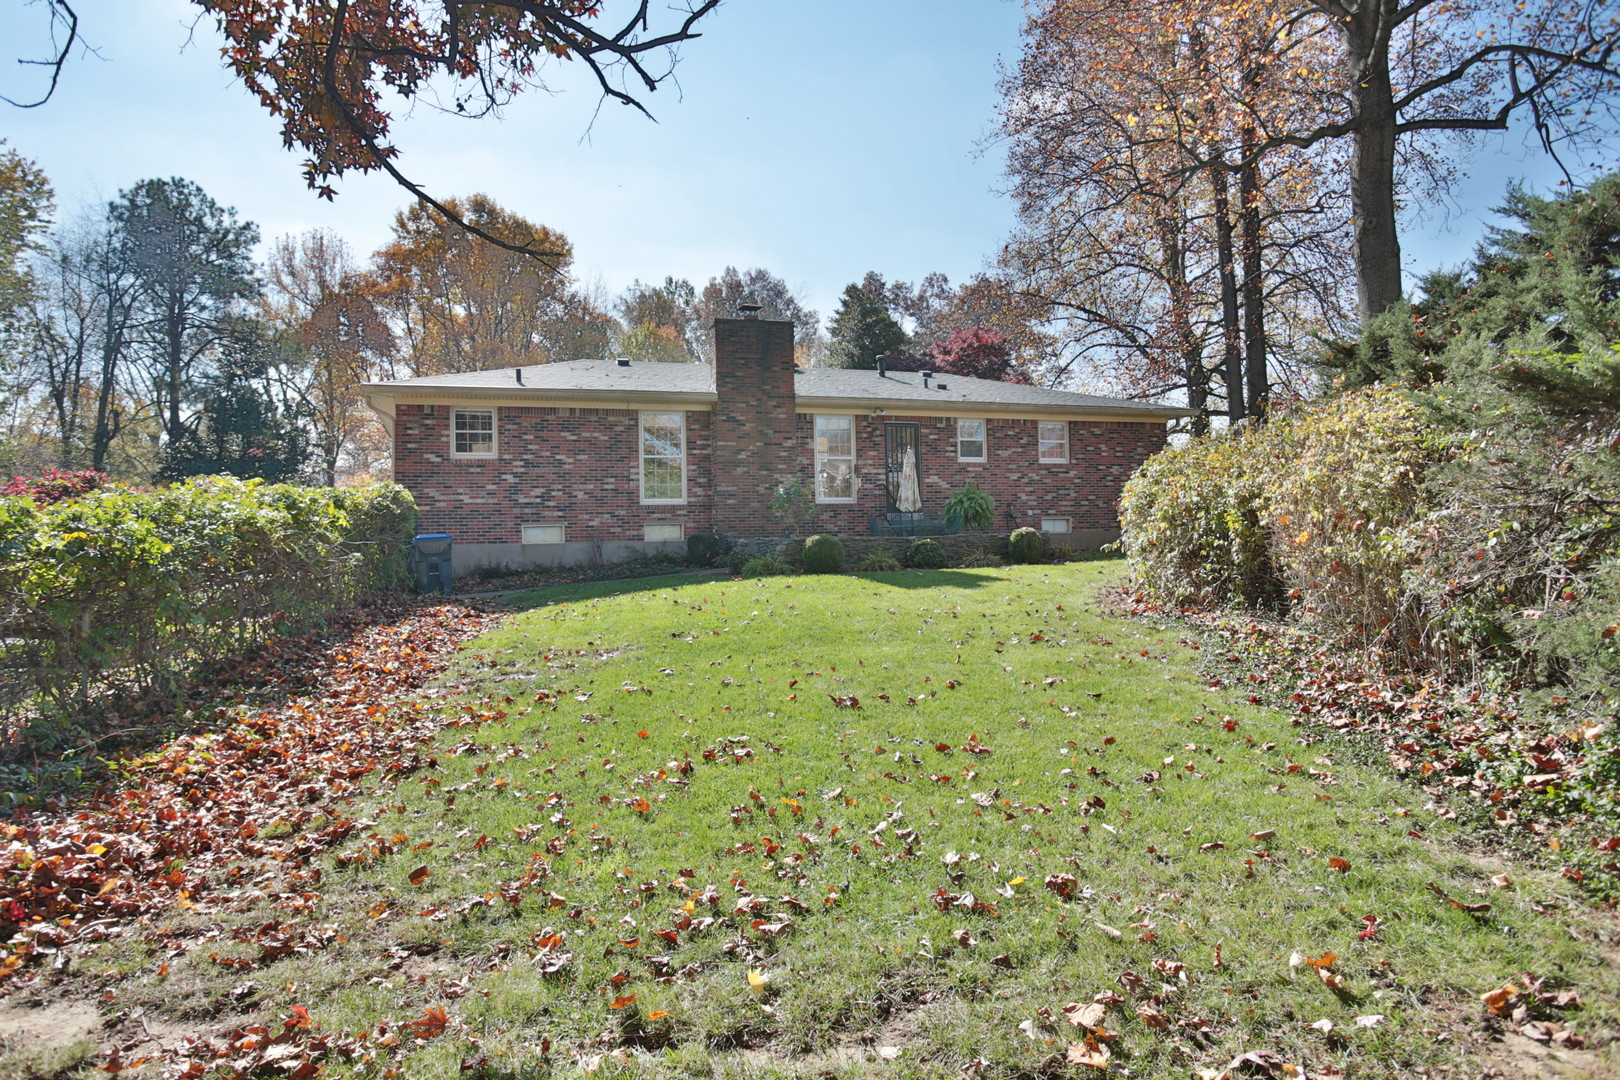 Tags iroquois park buying a home homes for sale real estate